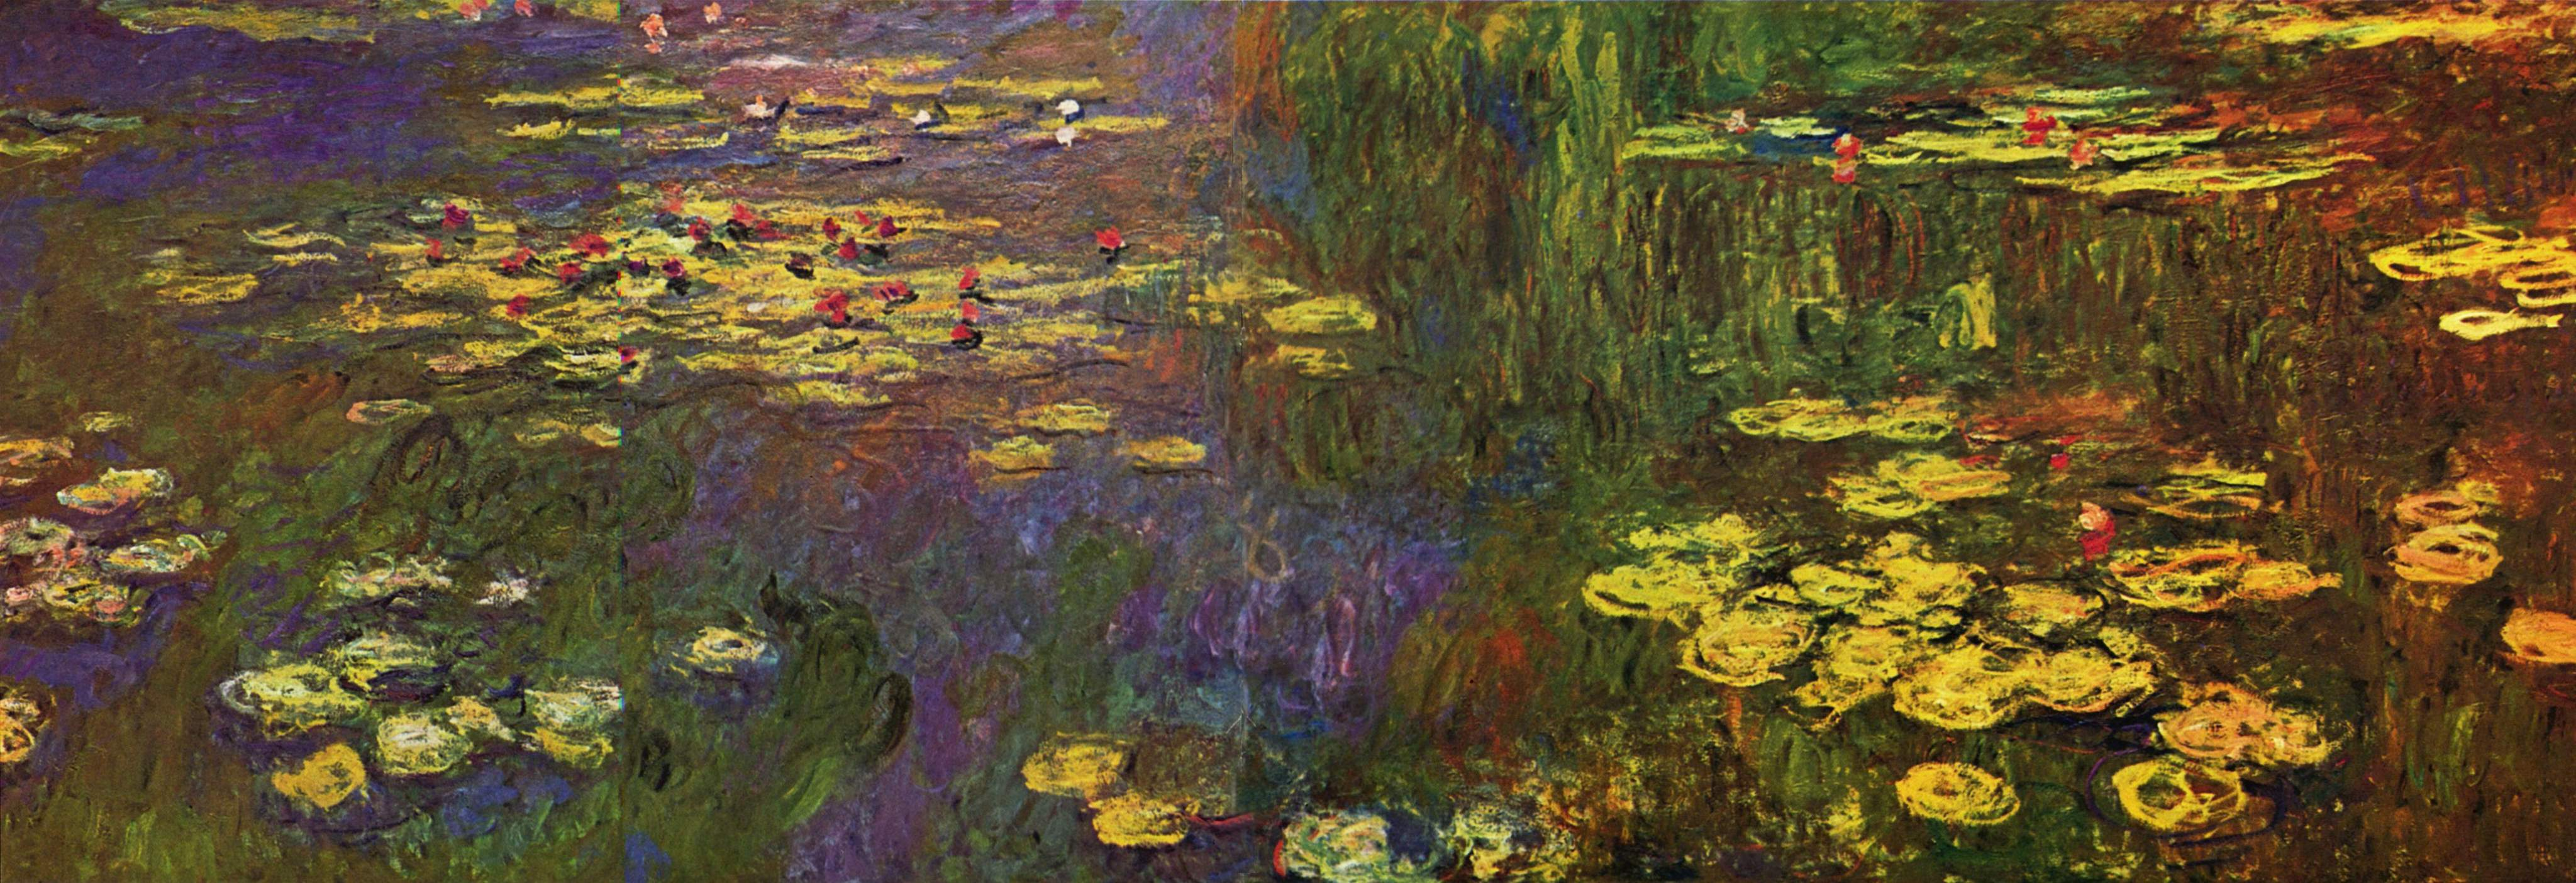 formal analysis of claude monet paintings Art analysis: claude monet's water lilies  critics picked up on the title of one of claude monet's paintings, impression, sunrise 1872.